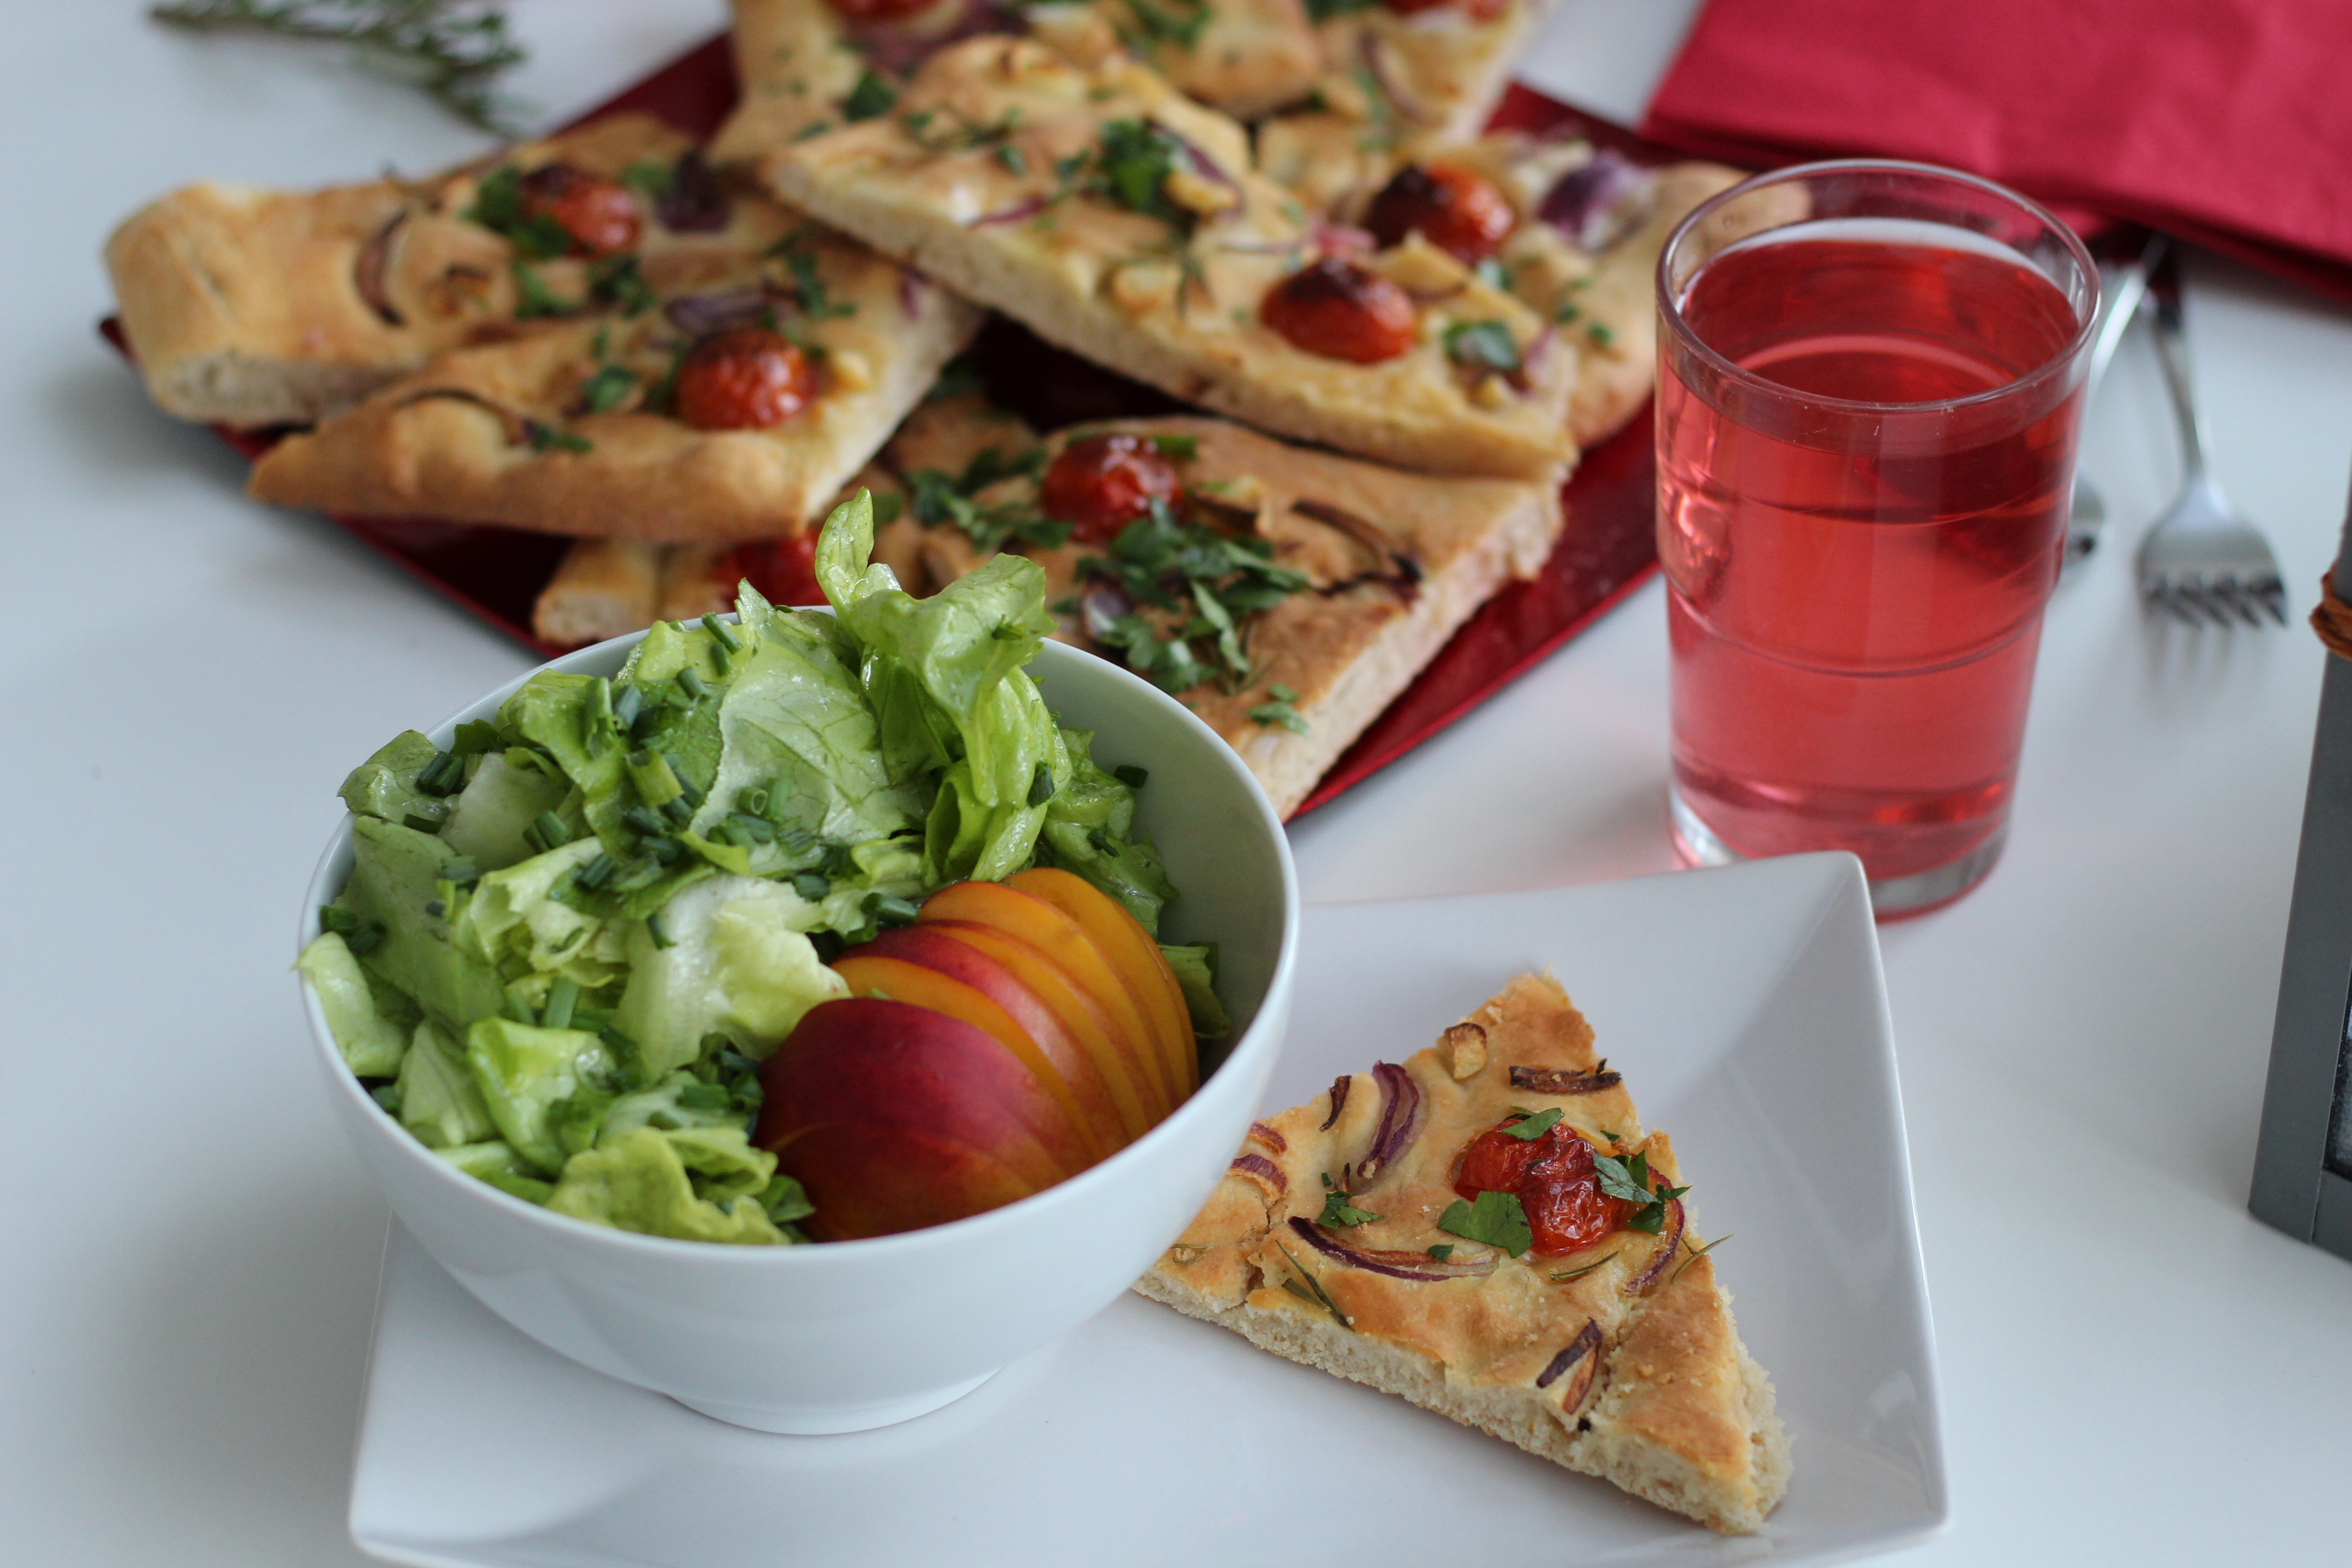 Vegan Focaccia, Dein Homespa, Vegan Food, Austria, (14)